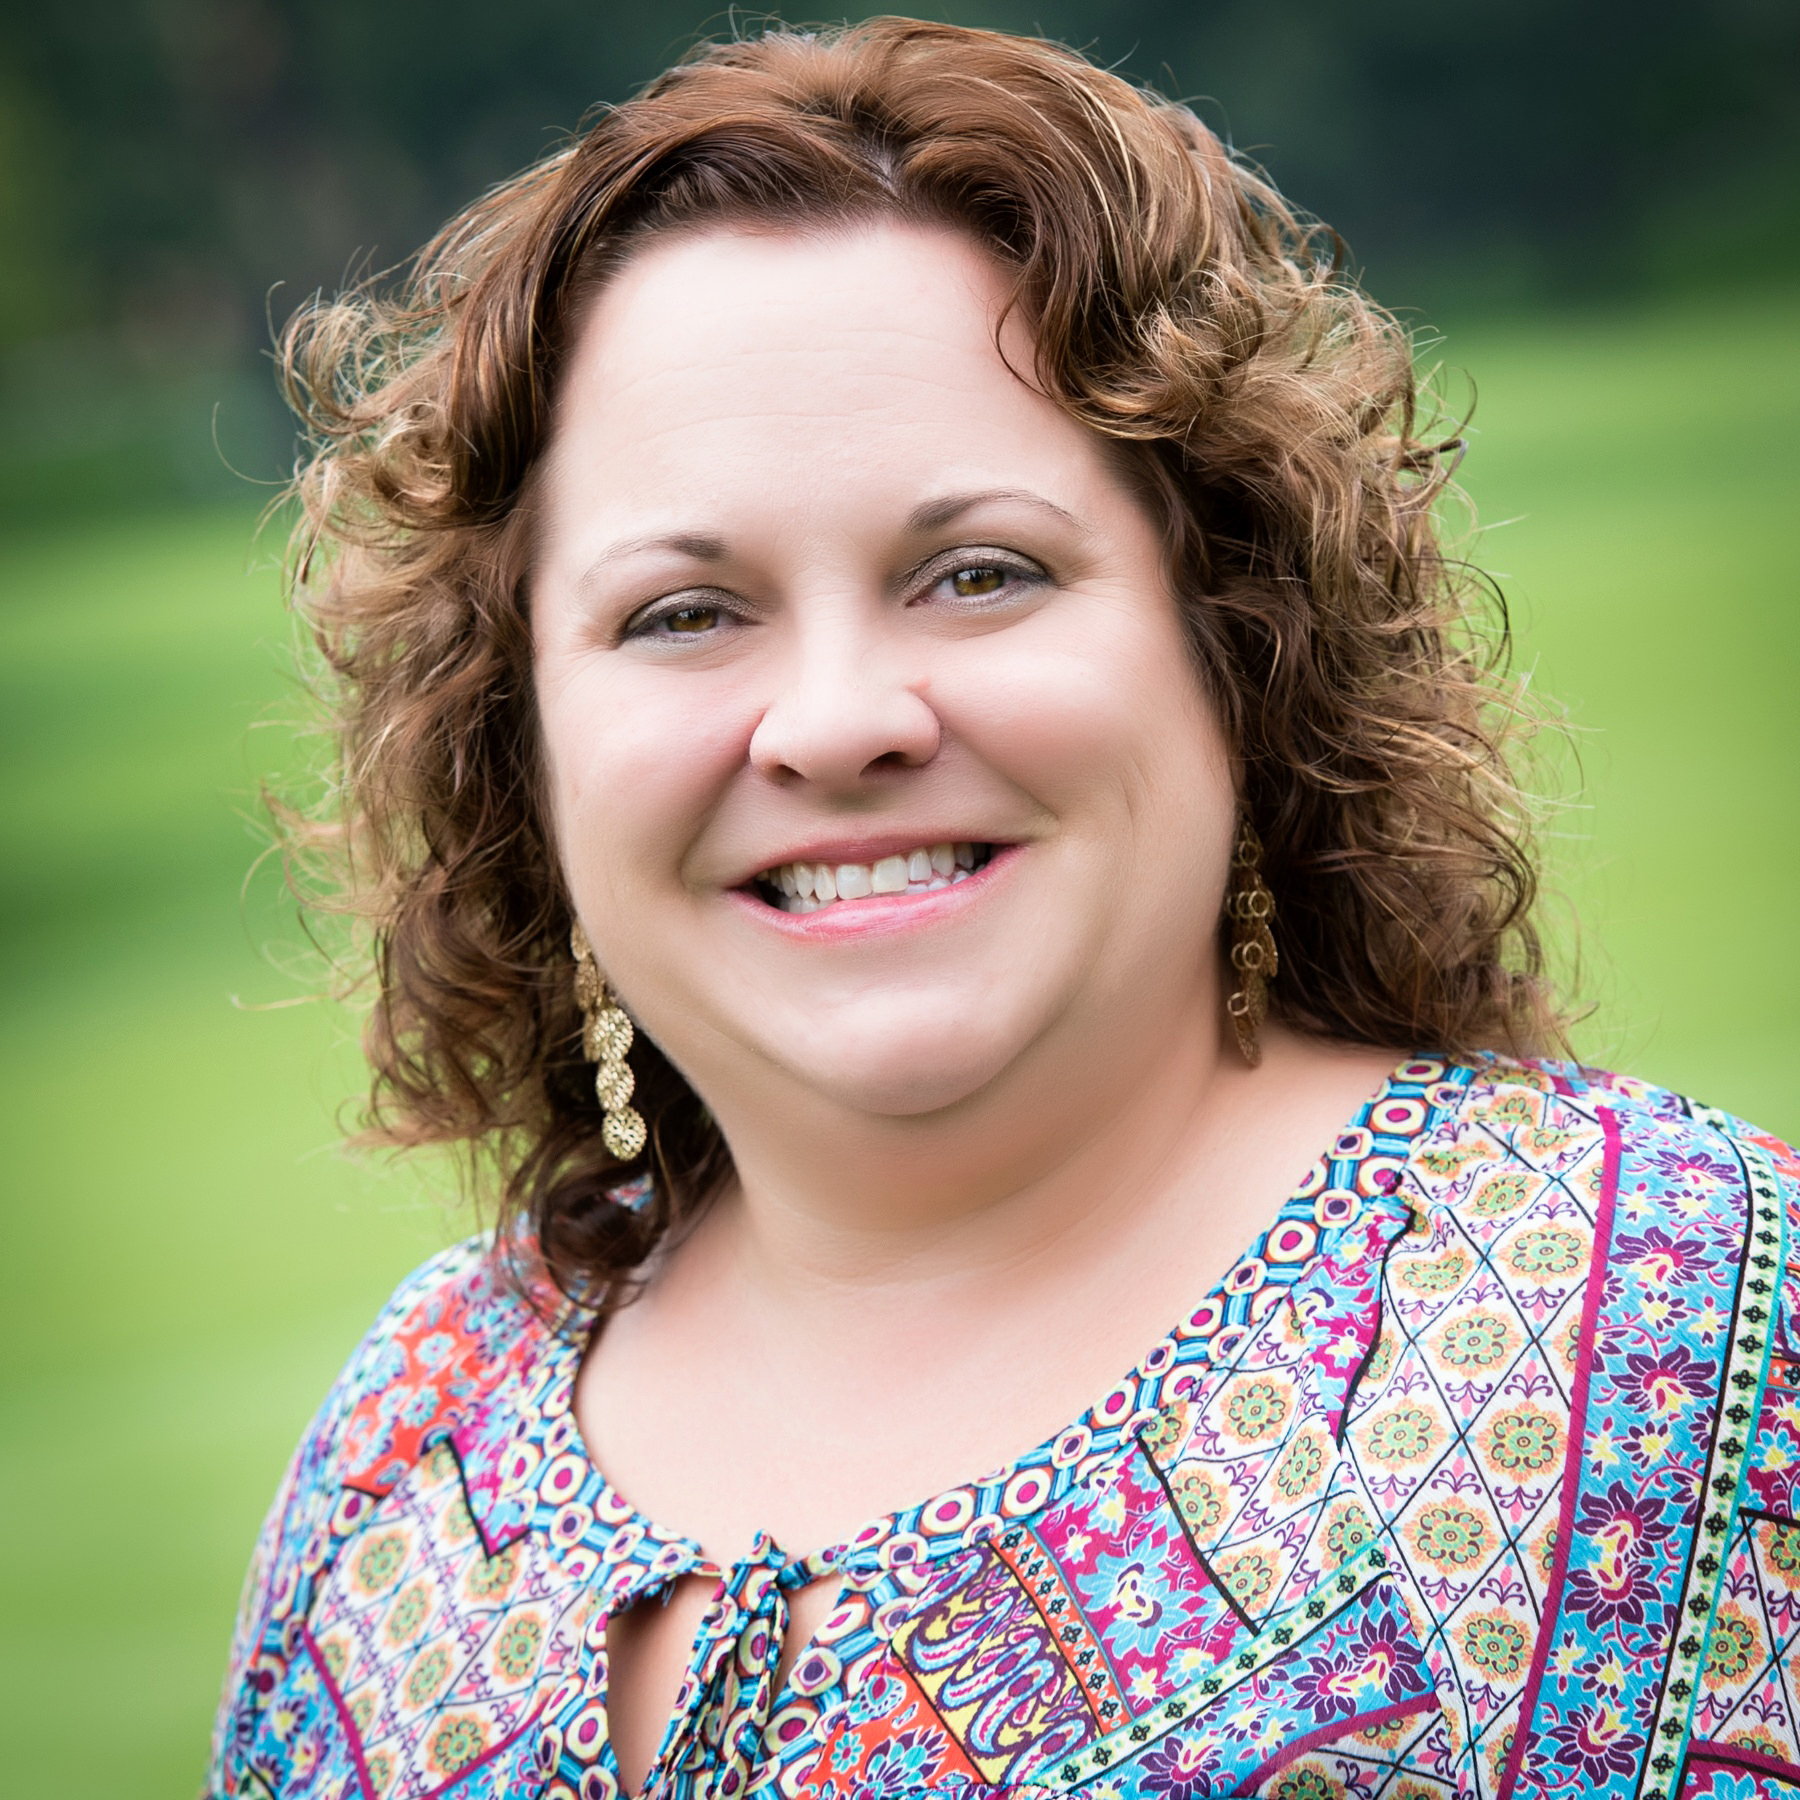 AMBER LAWRENCE, LiMHP, LMFT  Woodhaven Counseling Associates 12001 Q St. Omaha, NE 68137 (402) 592-0328  alawrence@woodhavencounseling.com   woodhavencounseling.com